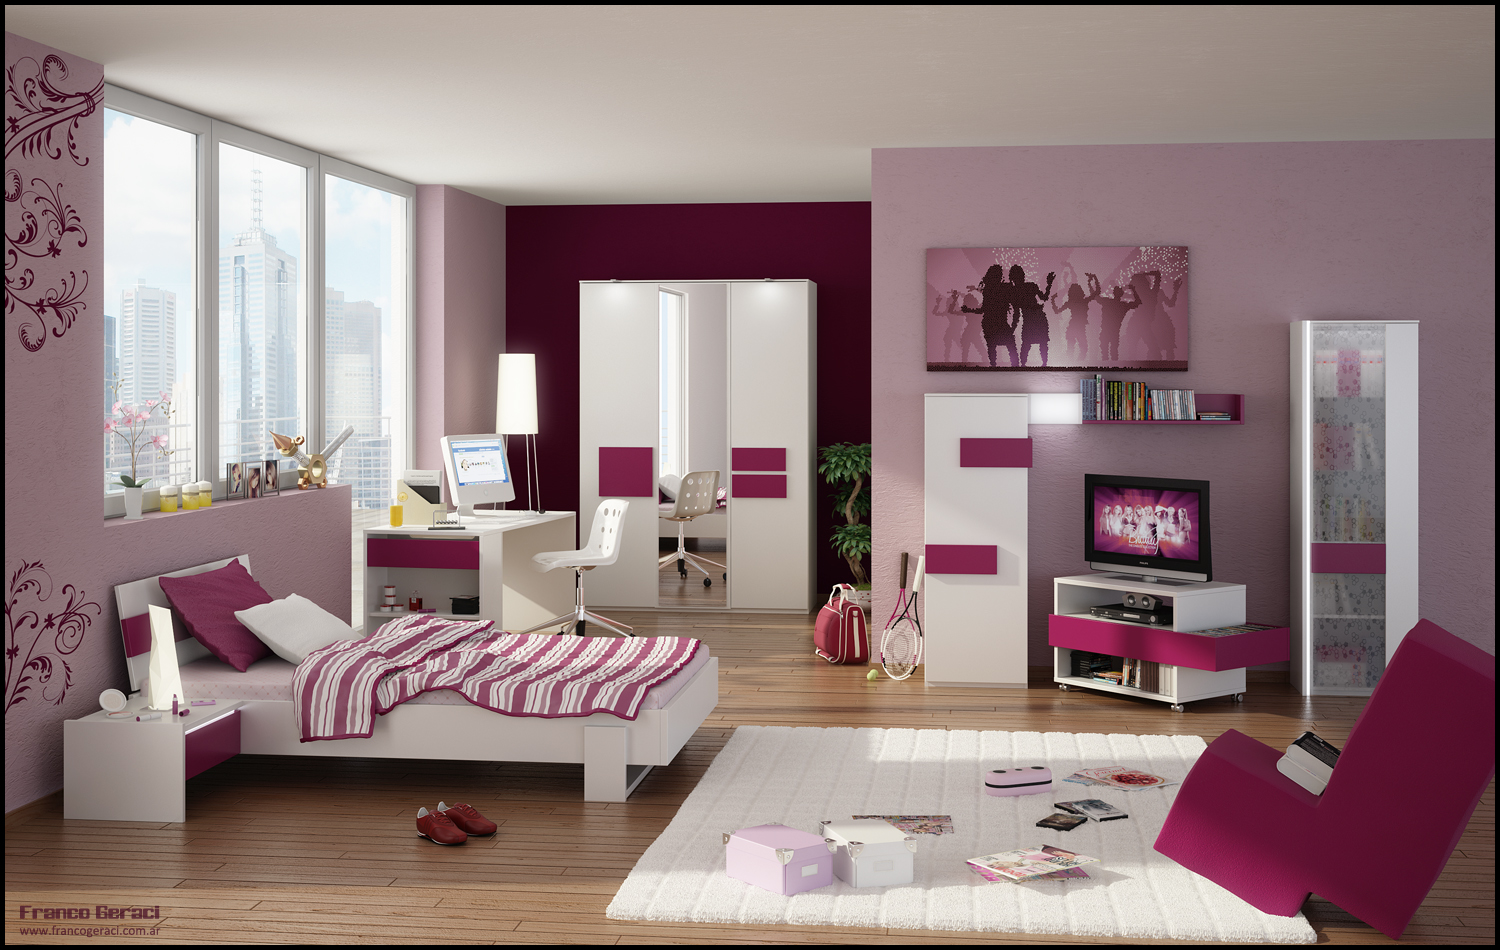 Awesome Design You Own Room Pictures - Best Ideas Interior - tridium.us